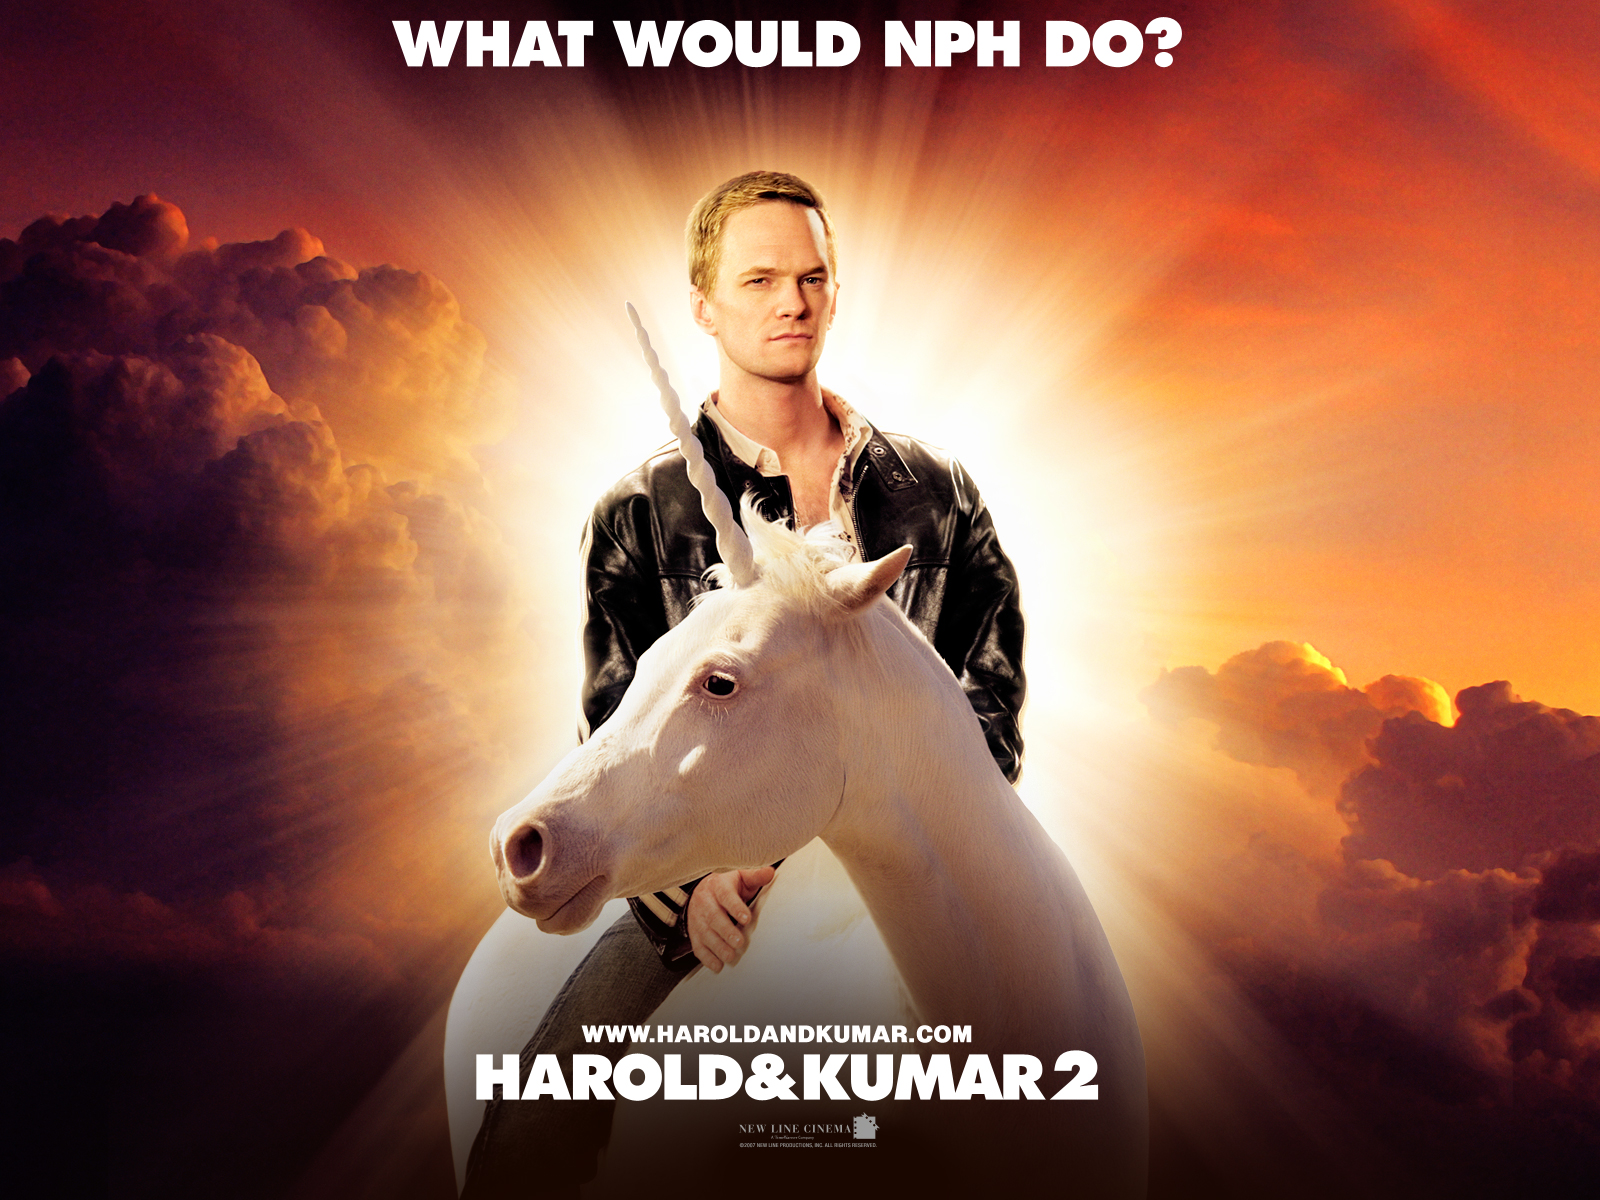 Harold And Kumar Escape From Guantanamo Bay Full Movie Free nph - harold & kumar wallpaper (480880) - fanpop